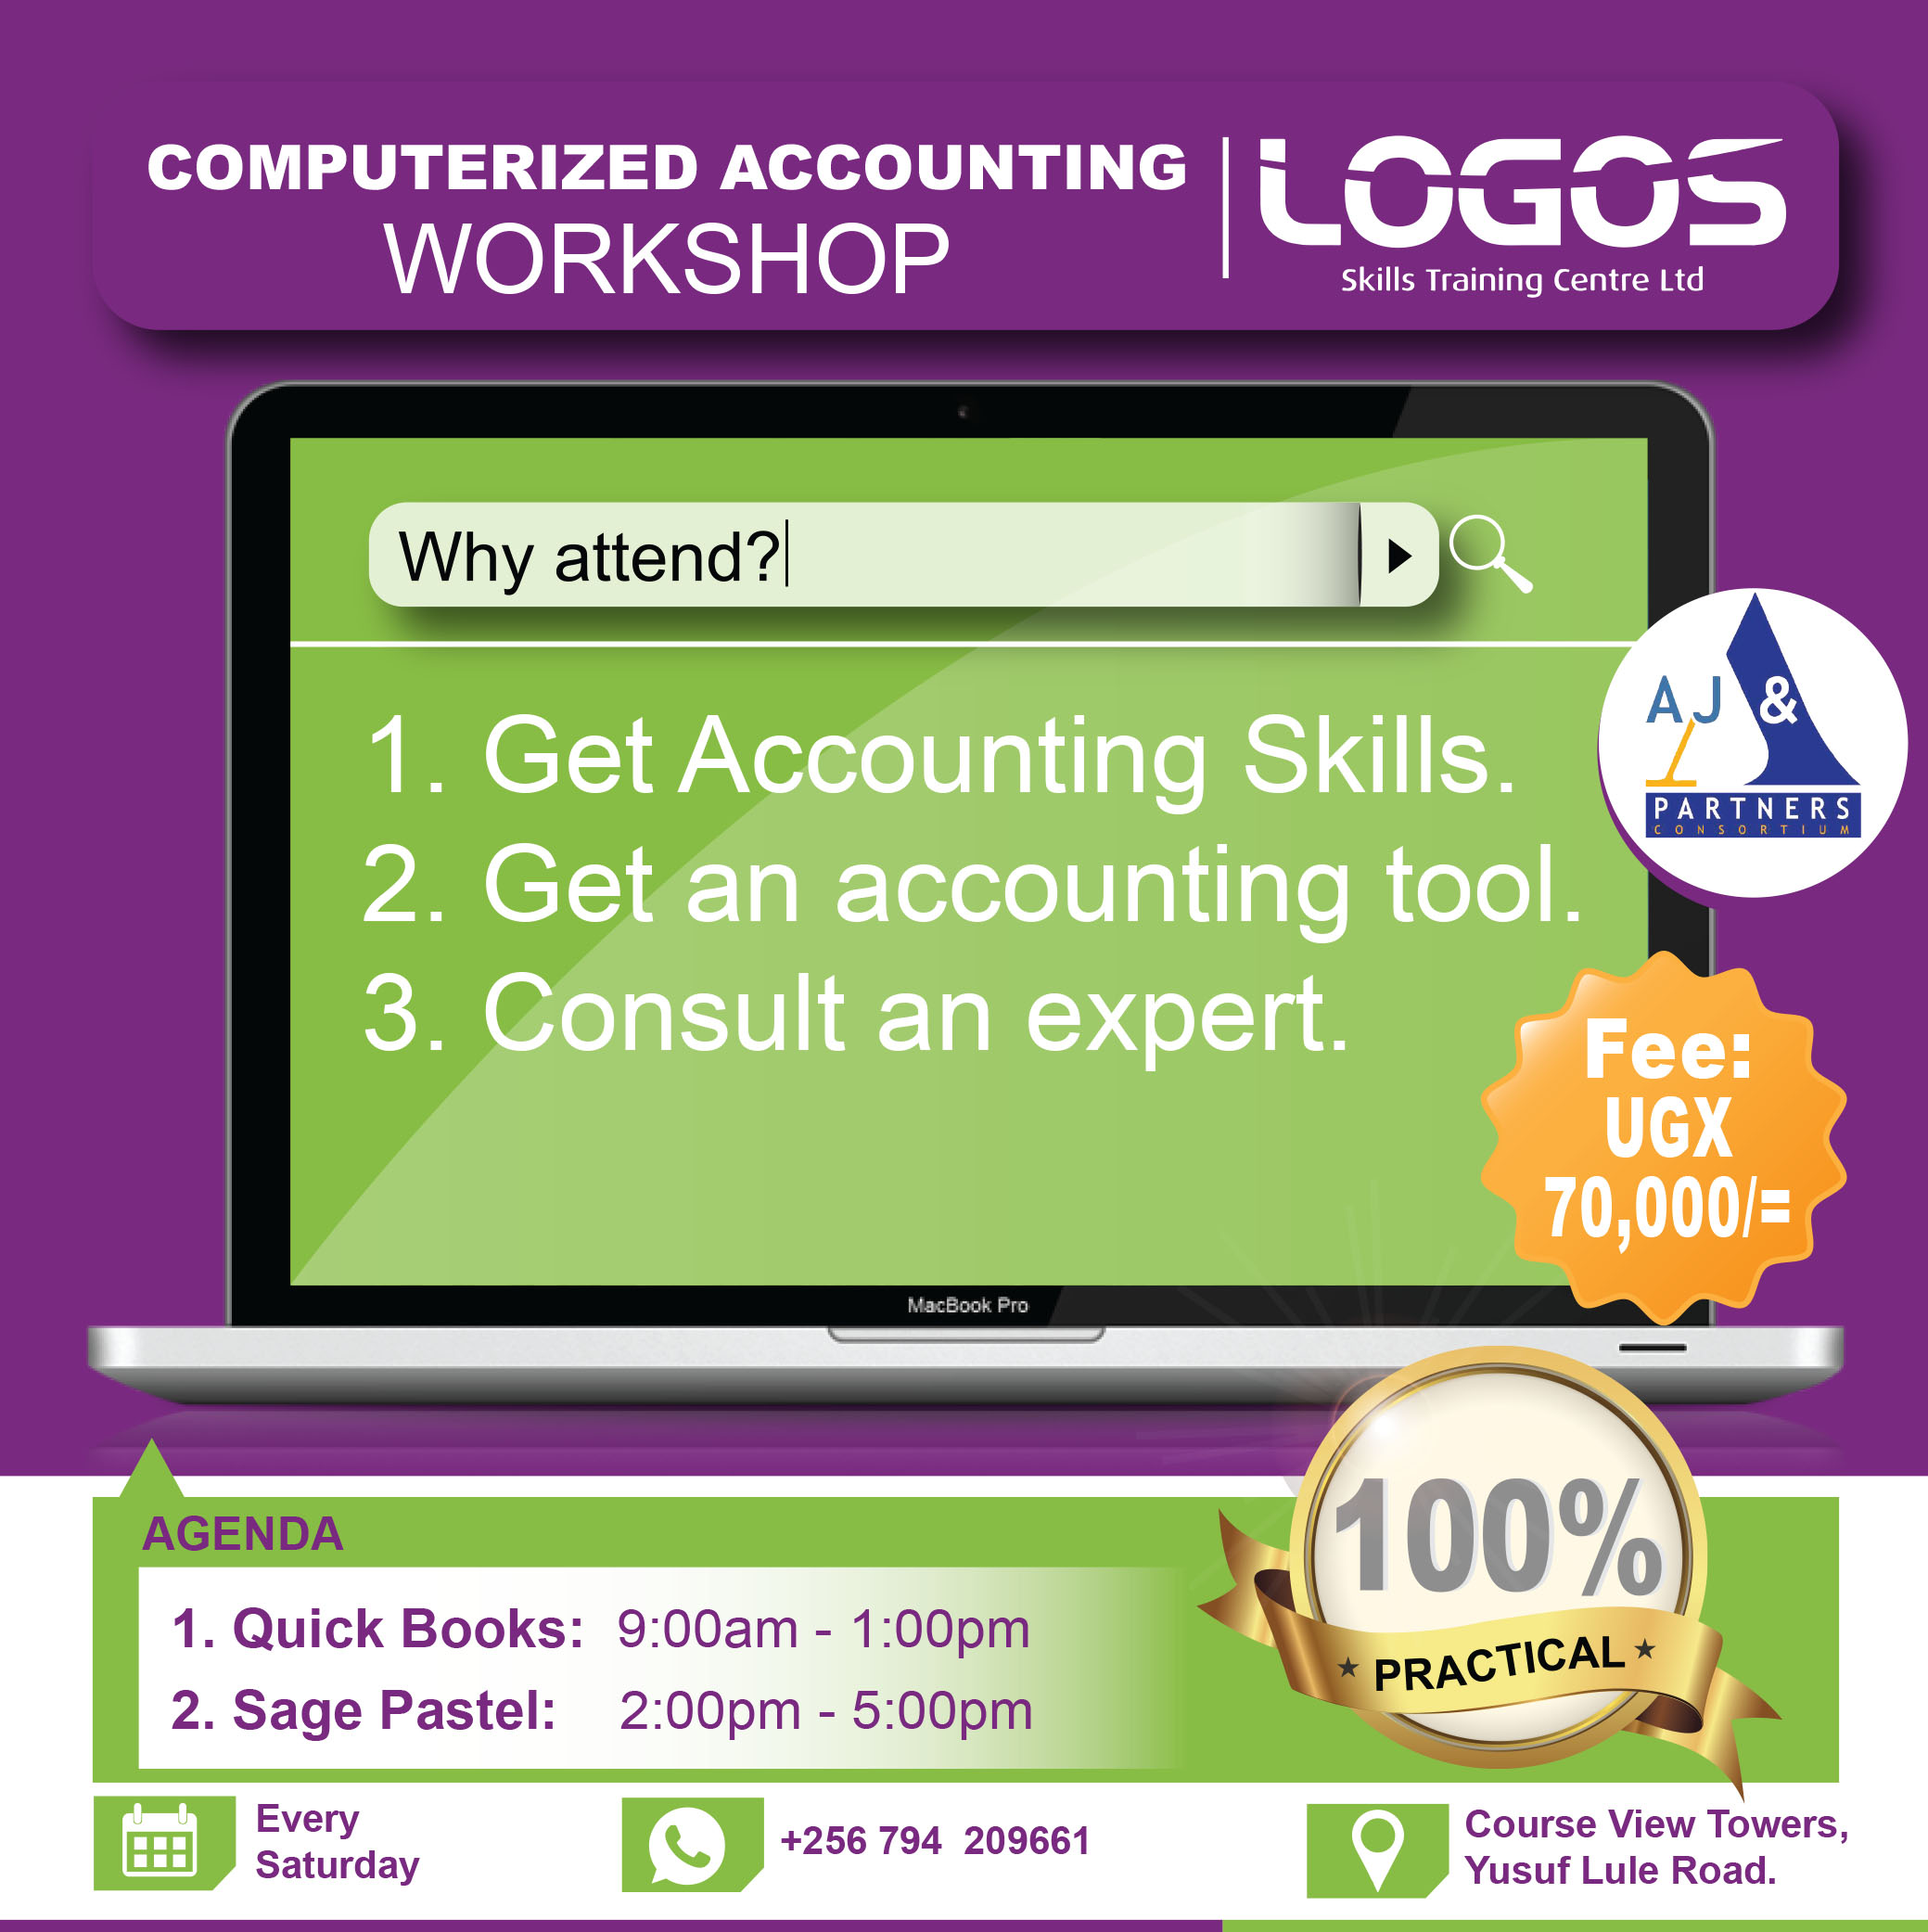 LOGOS COMPUTERIZED ACCOUNTING